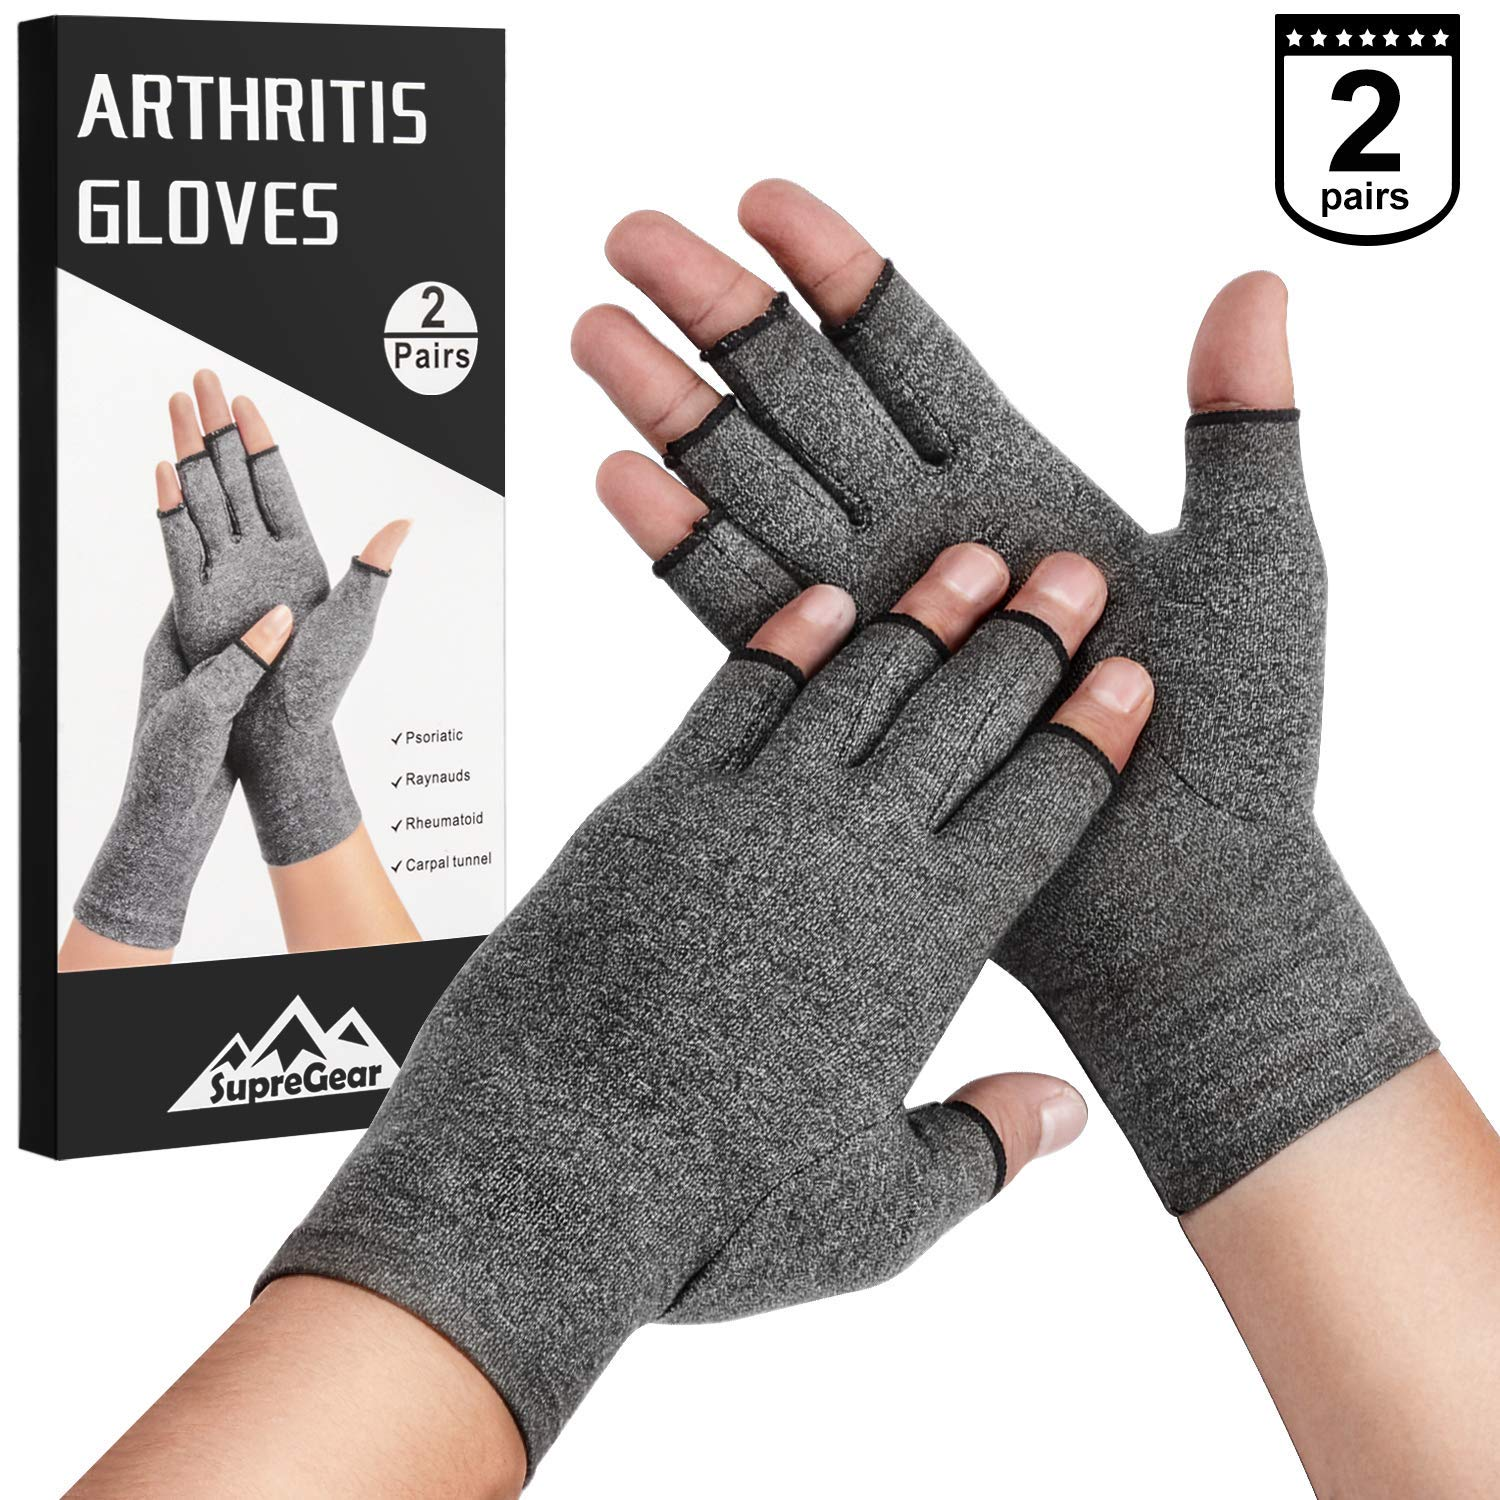 2-Pairs SupreGear Arthritis Gloves, Rheumatoid Arthritis Compression Gloves for Arthritis Hands, Pain Relief Gaming Typing Fingerless Gloves for Women Men (Grey, M)